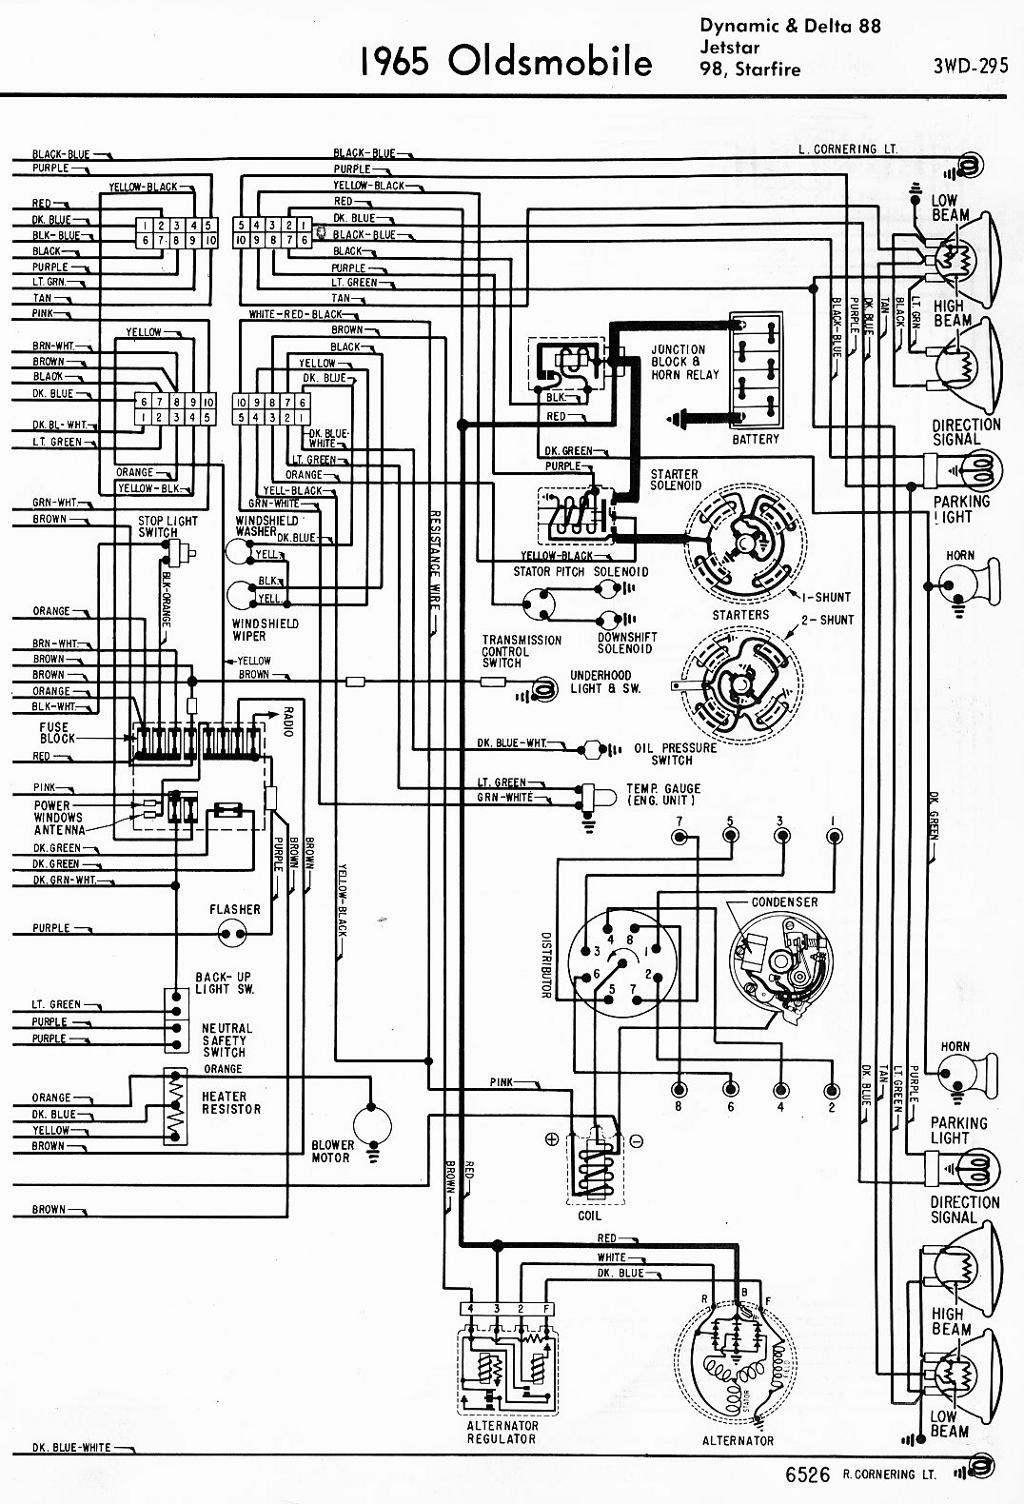 free car wiring diagram oldsmobile basic guide wiring diagram \u2022 free car repair manuals pdf download oldsmobile car manuals wiring diagrams pdf fault codes rh automotive manuals net free jeep wiring diagrams free car wiring car schematics